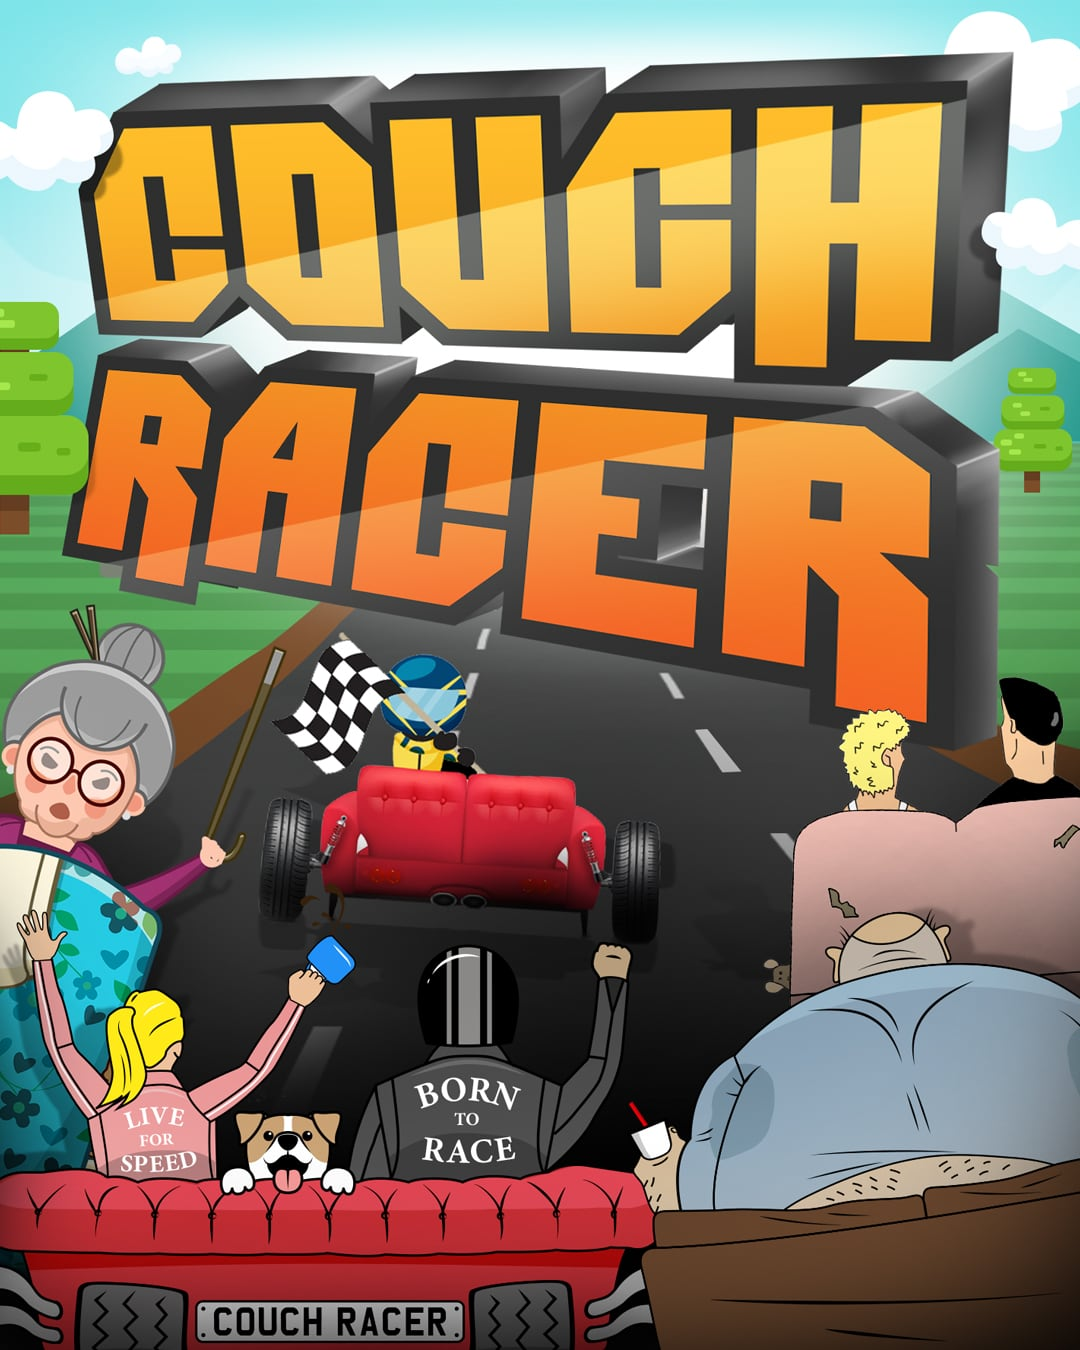 Start Your Couches: Innocean puts lockdown twist on classic game with 'Couch Racer' launch